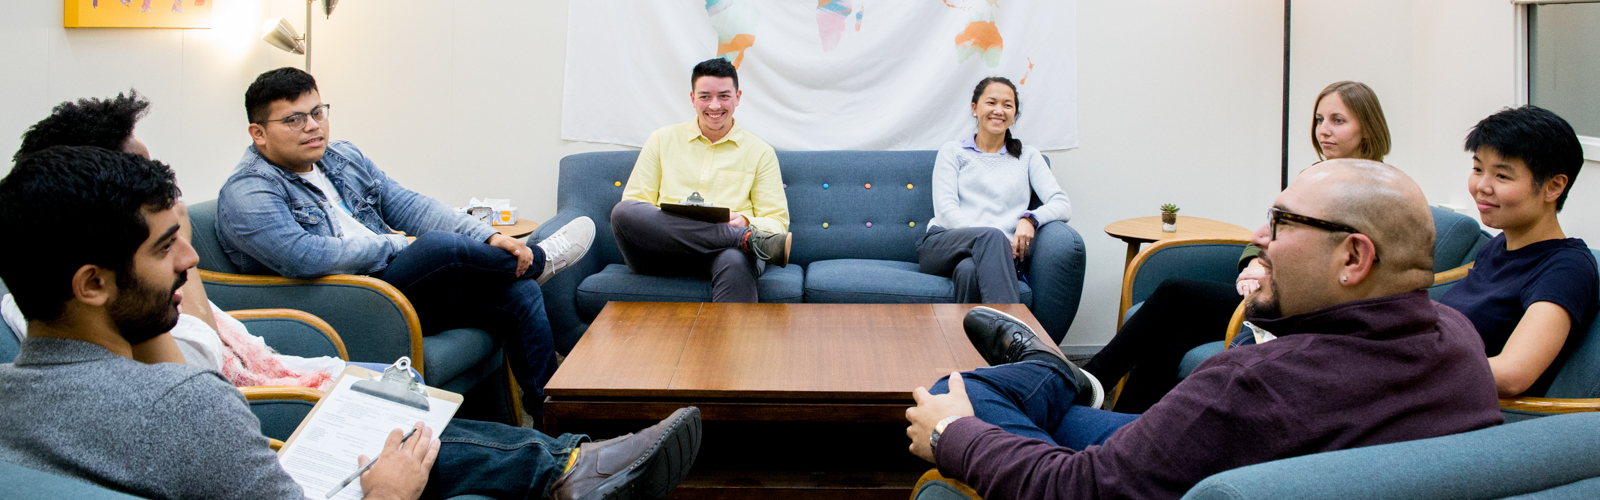 Students in a mock counseling session